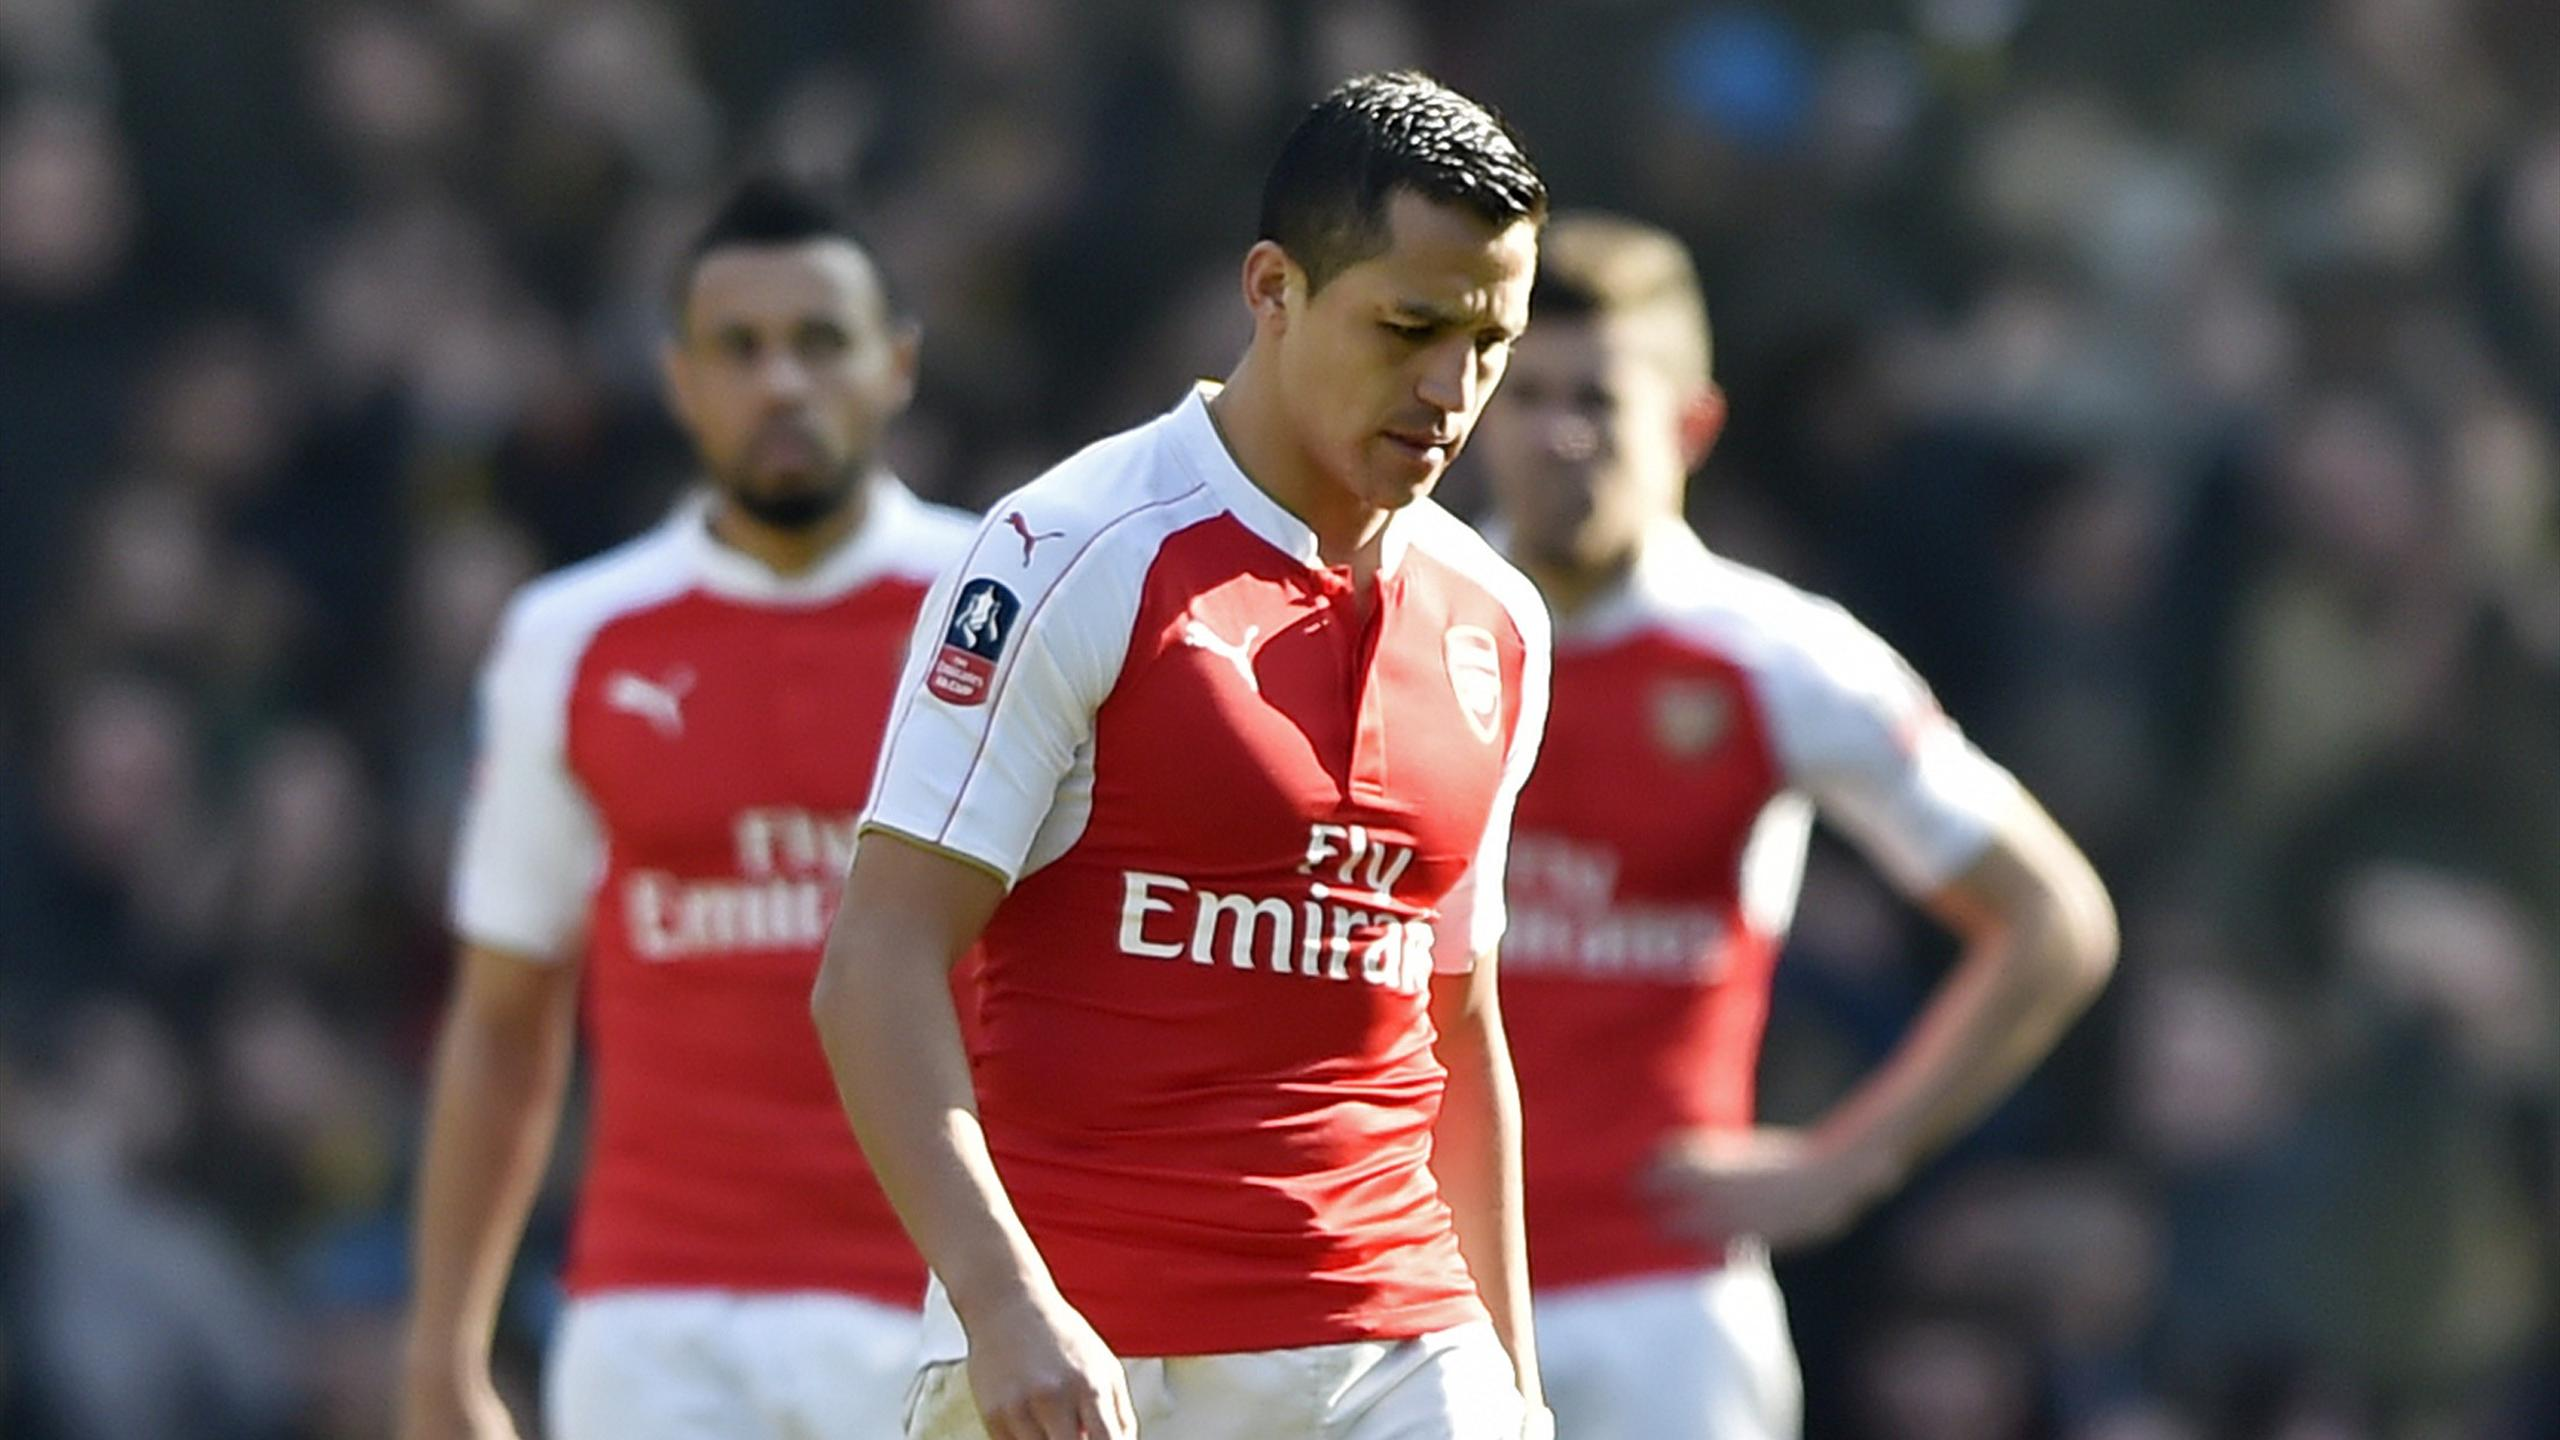 Arsenal's Alexis Sanchez looks dejected after Odion Ighalo (not pictured) scores the first goal for Watford